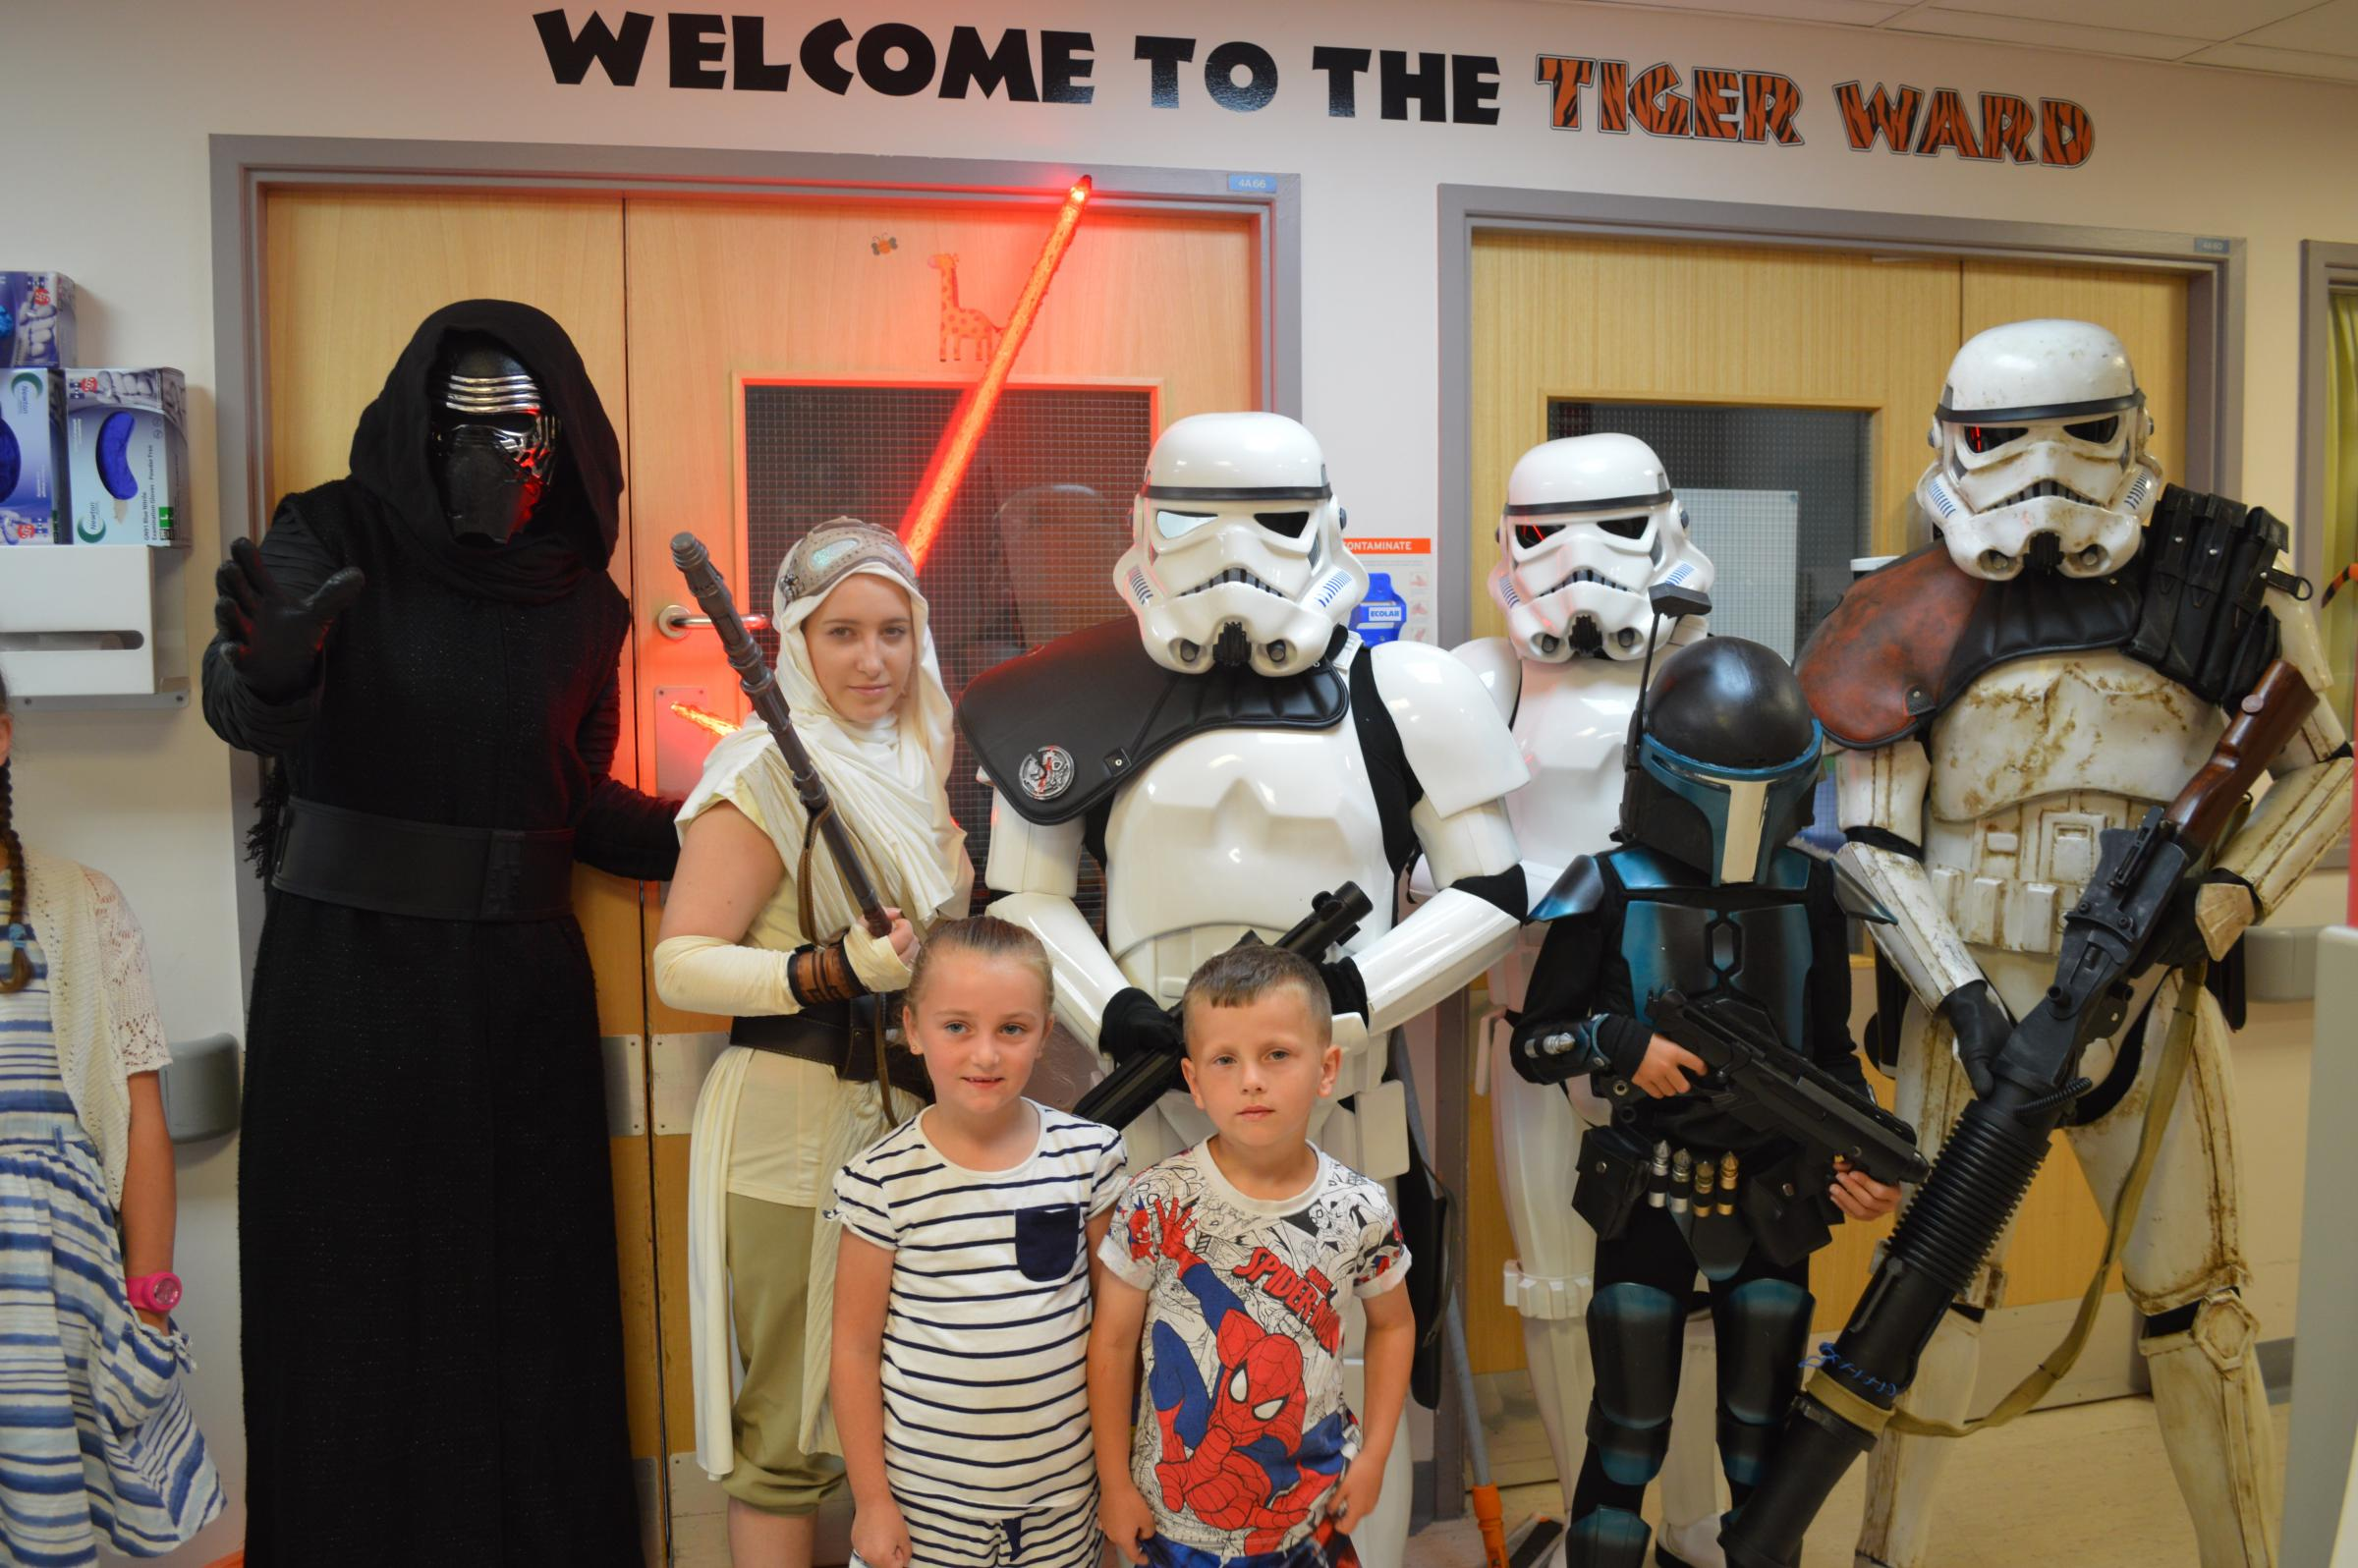 Travellors from a galaxy far far away visit children at Queen Elizabeth Hospital's cancer ward